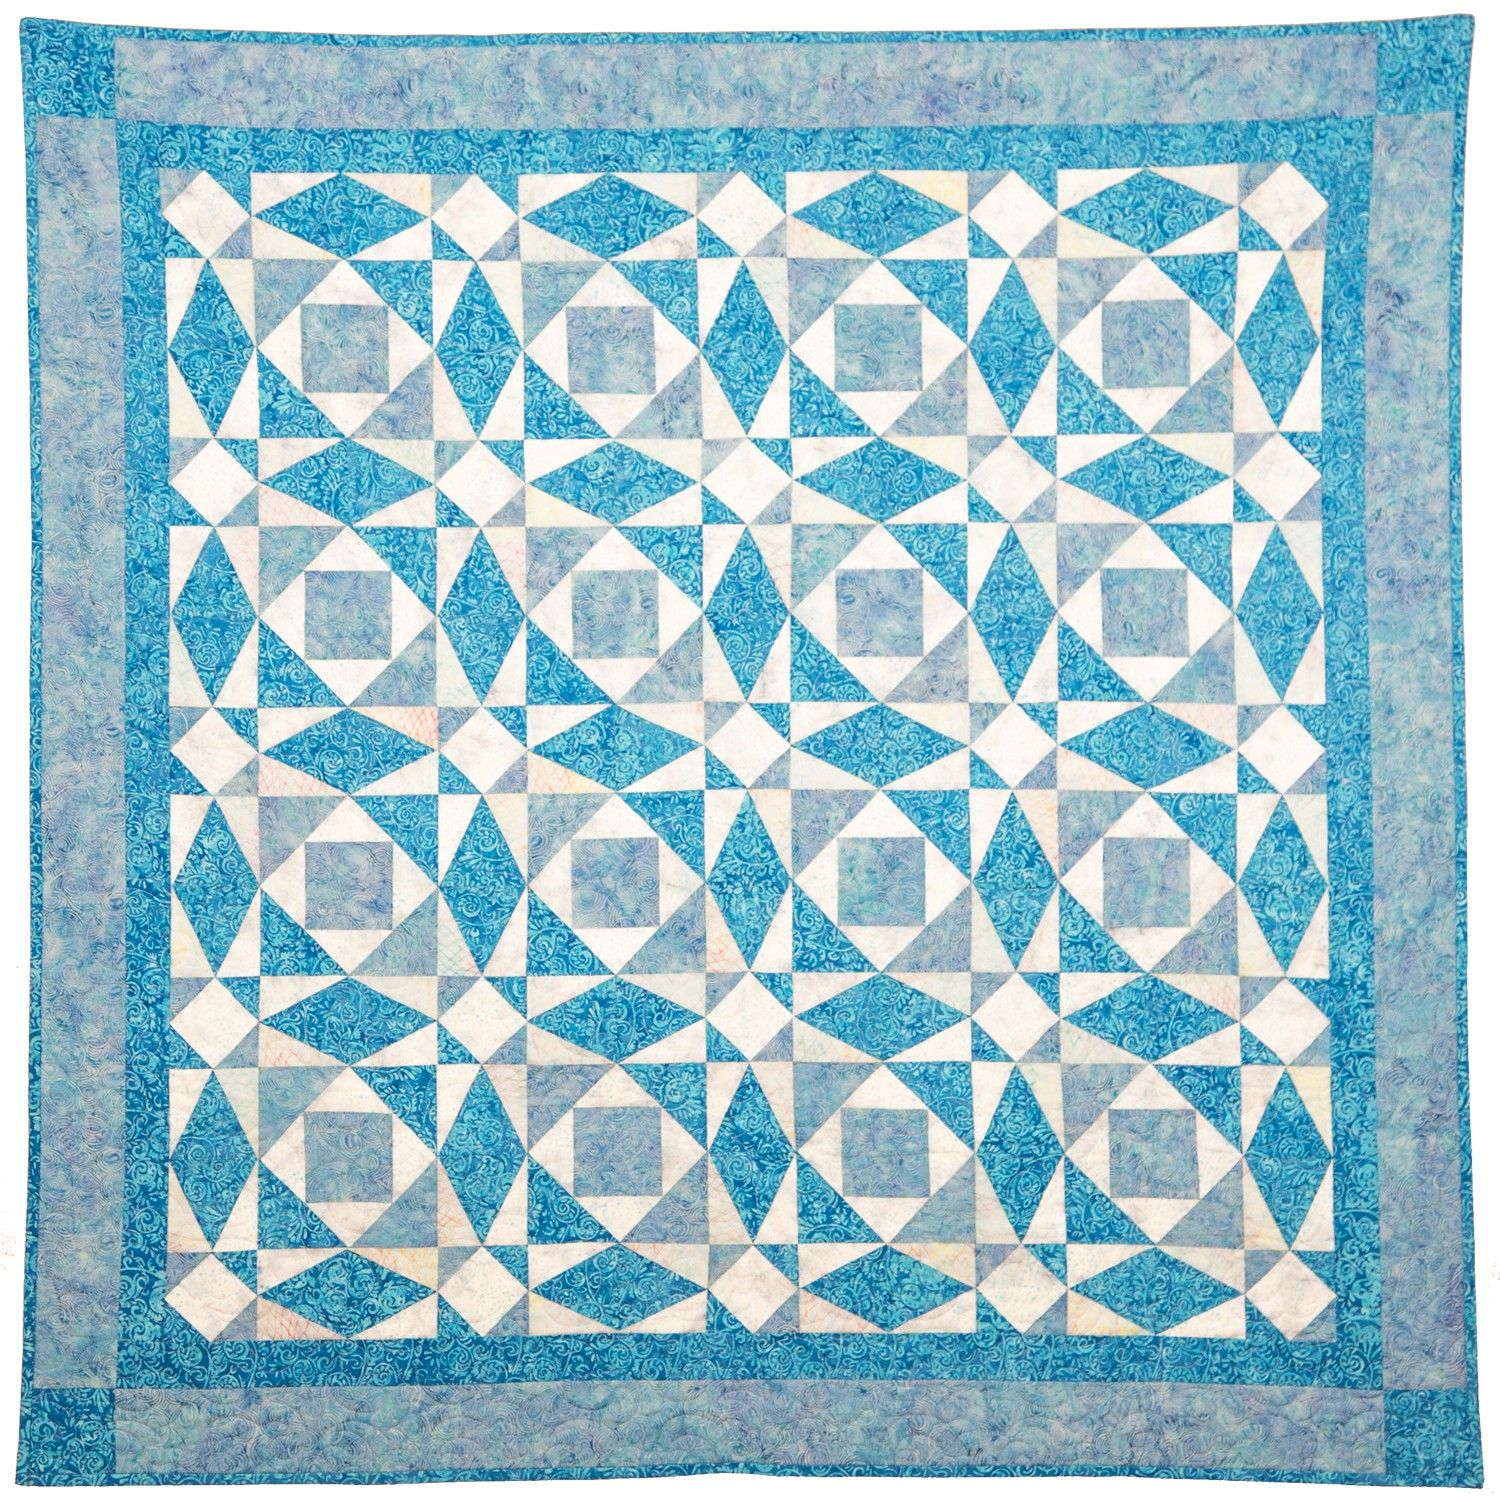 Go qube 6 storm at sea throw quilt pattern pq10752 for Storm at sea quilt template